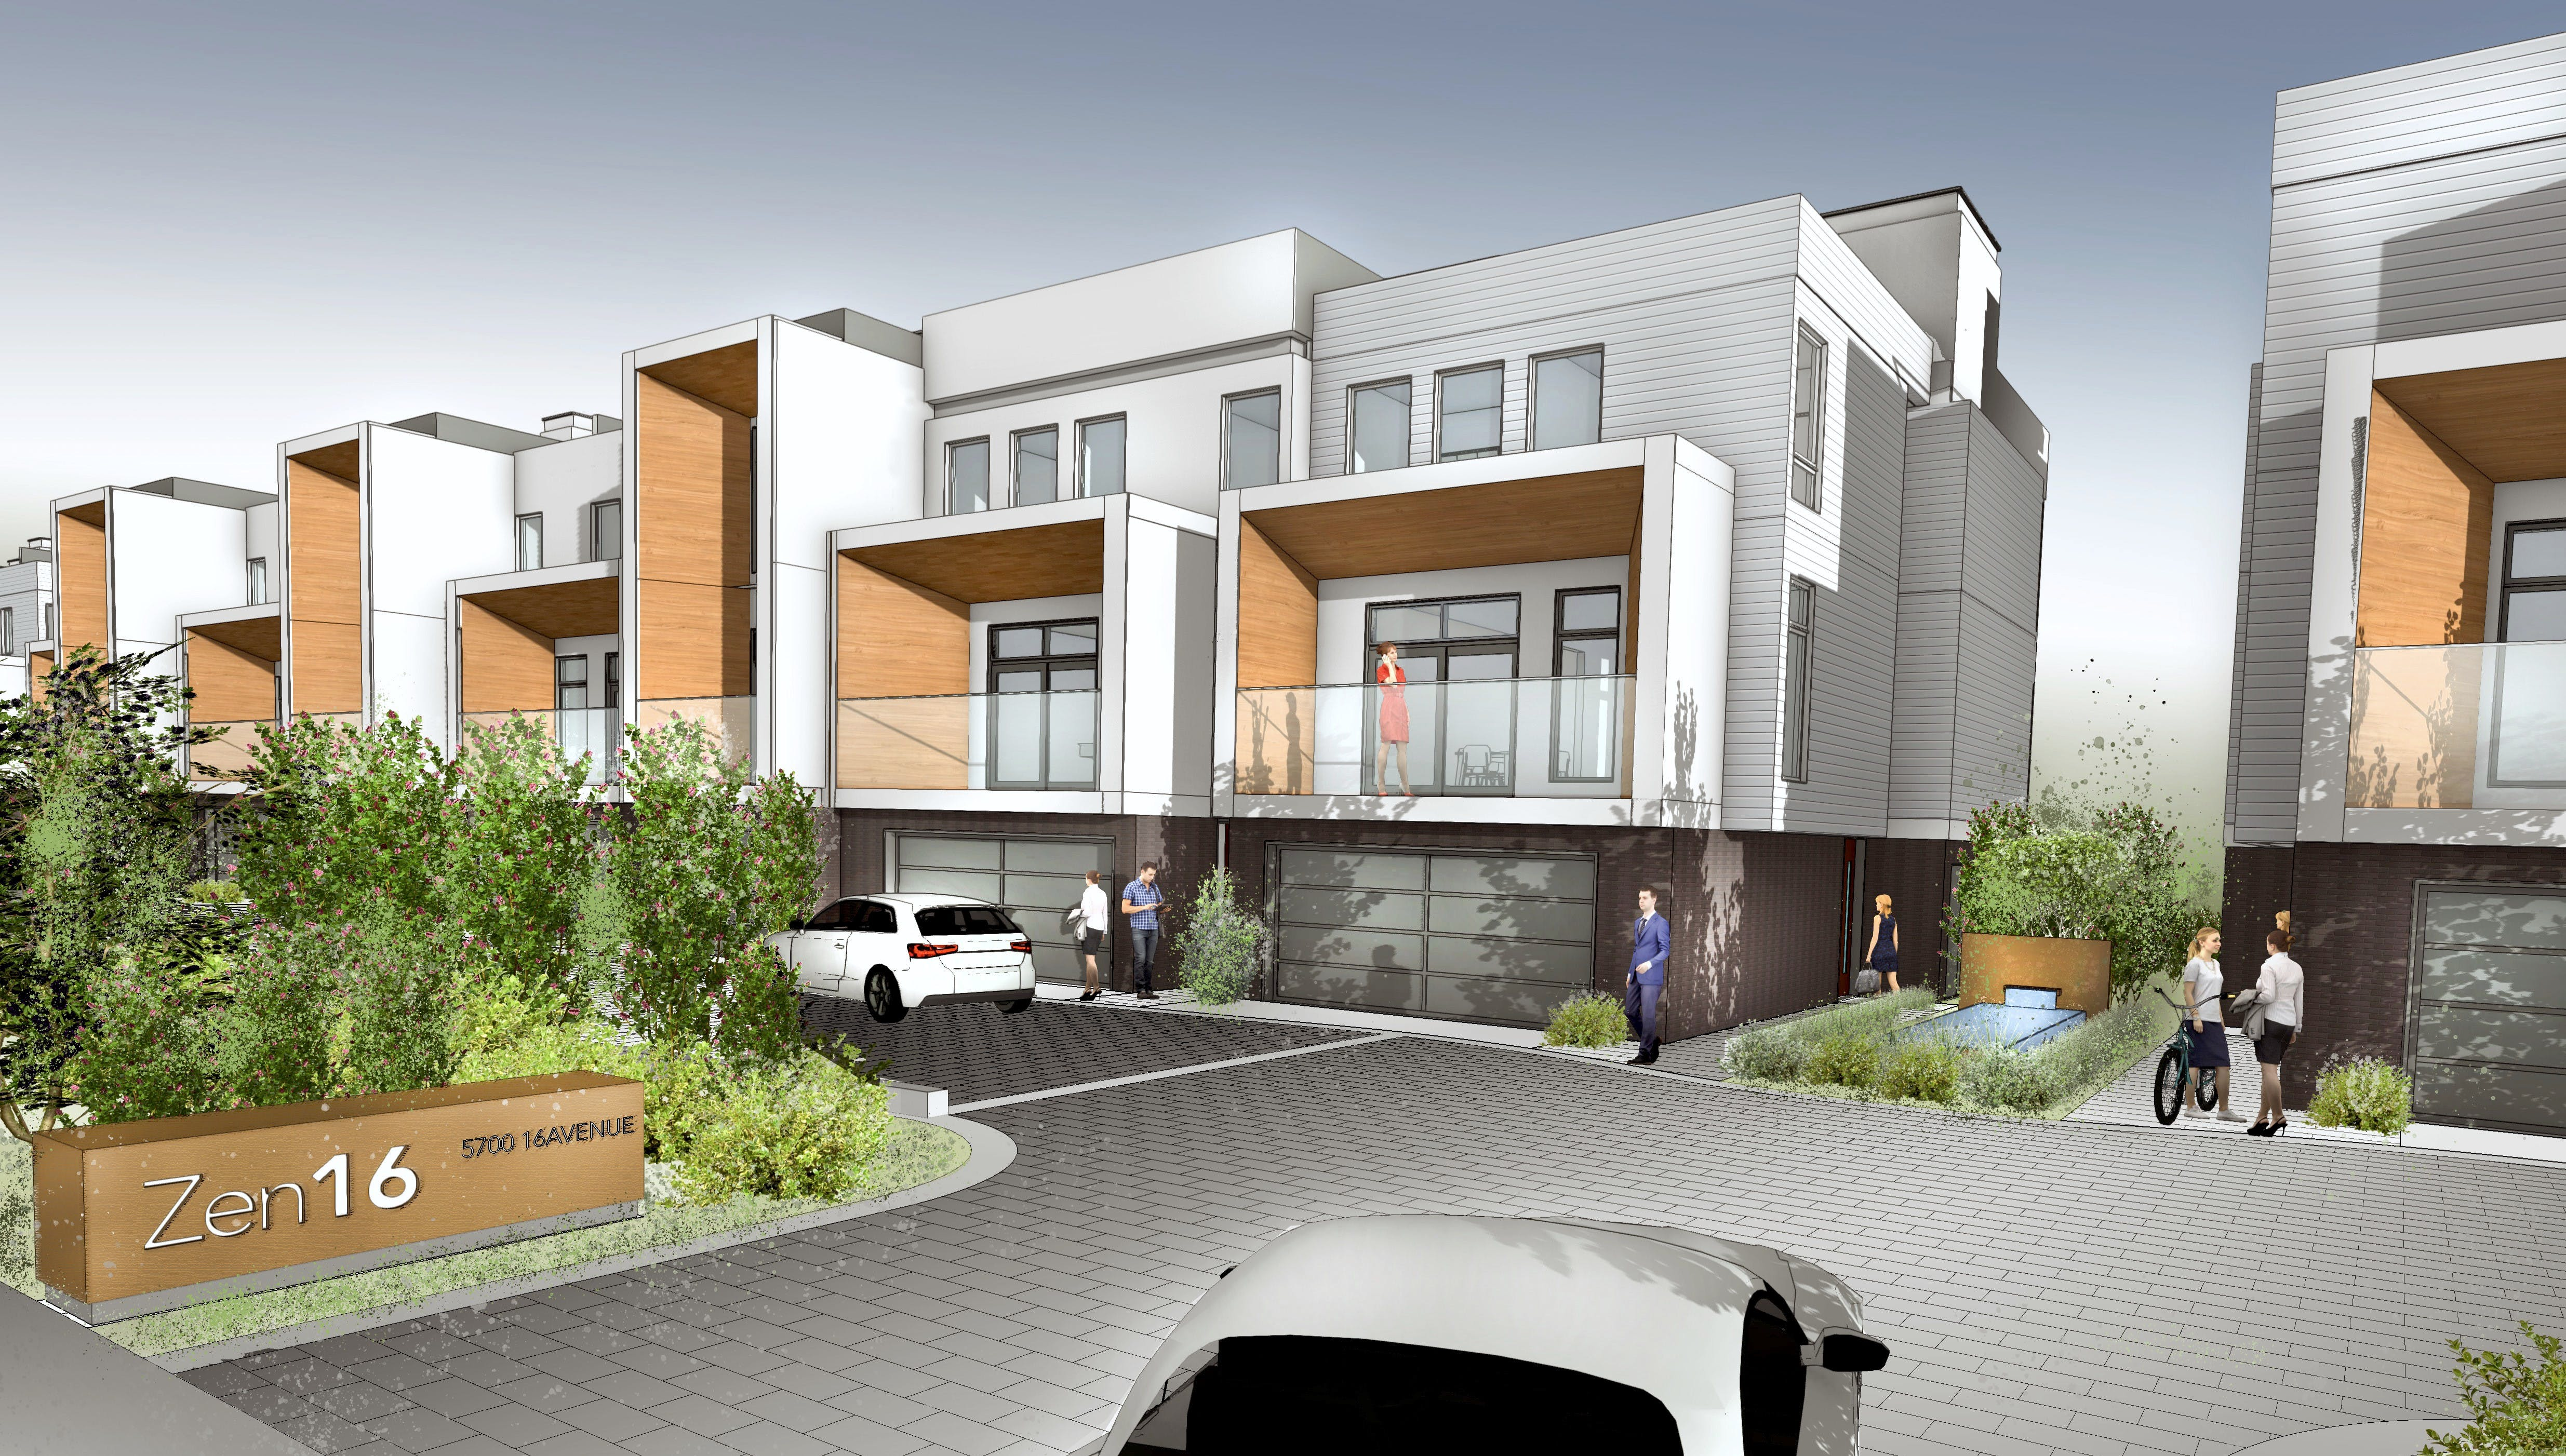 Rendering from 16 Avenue (North)